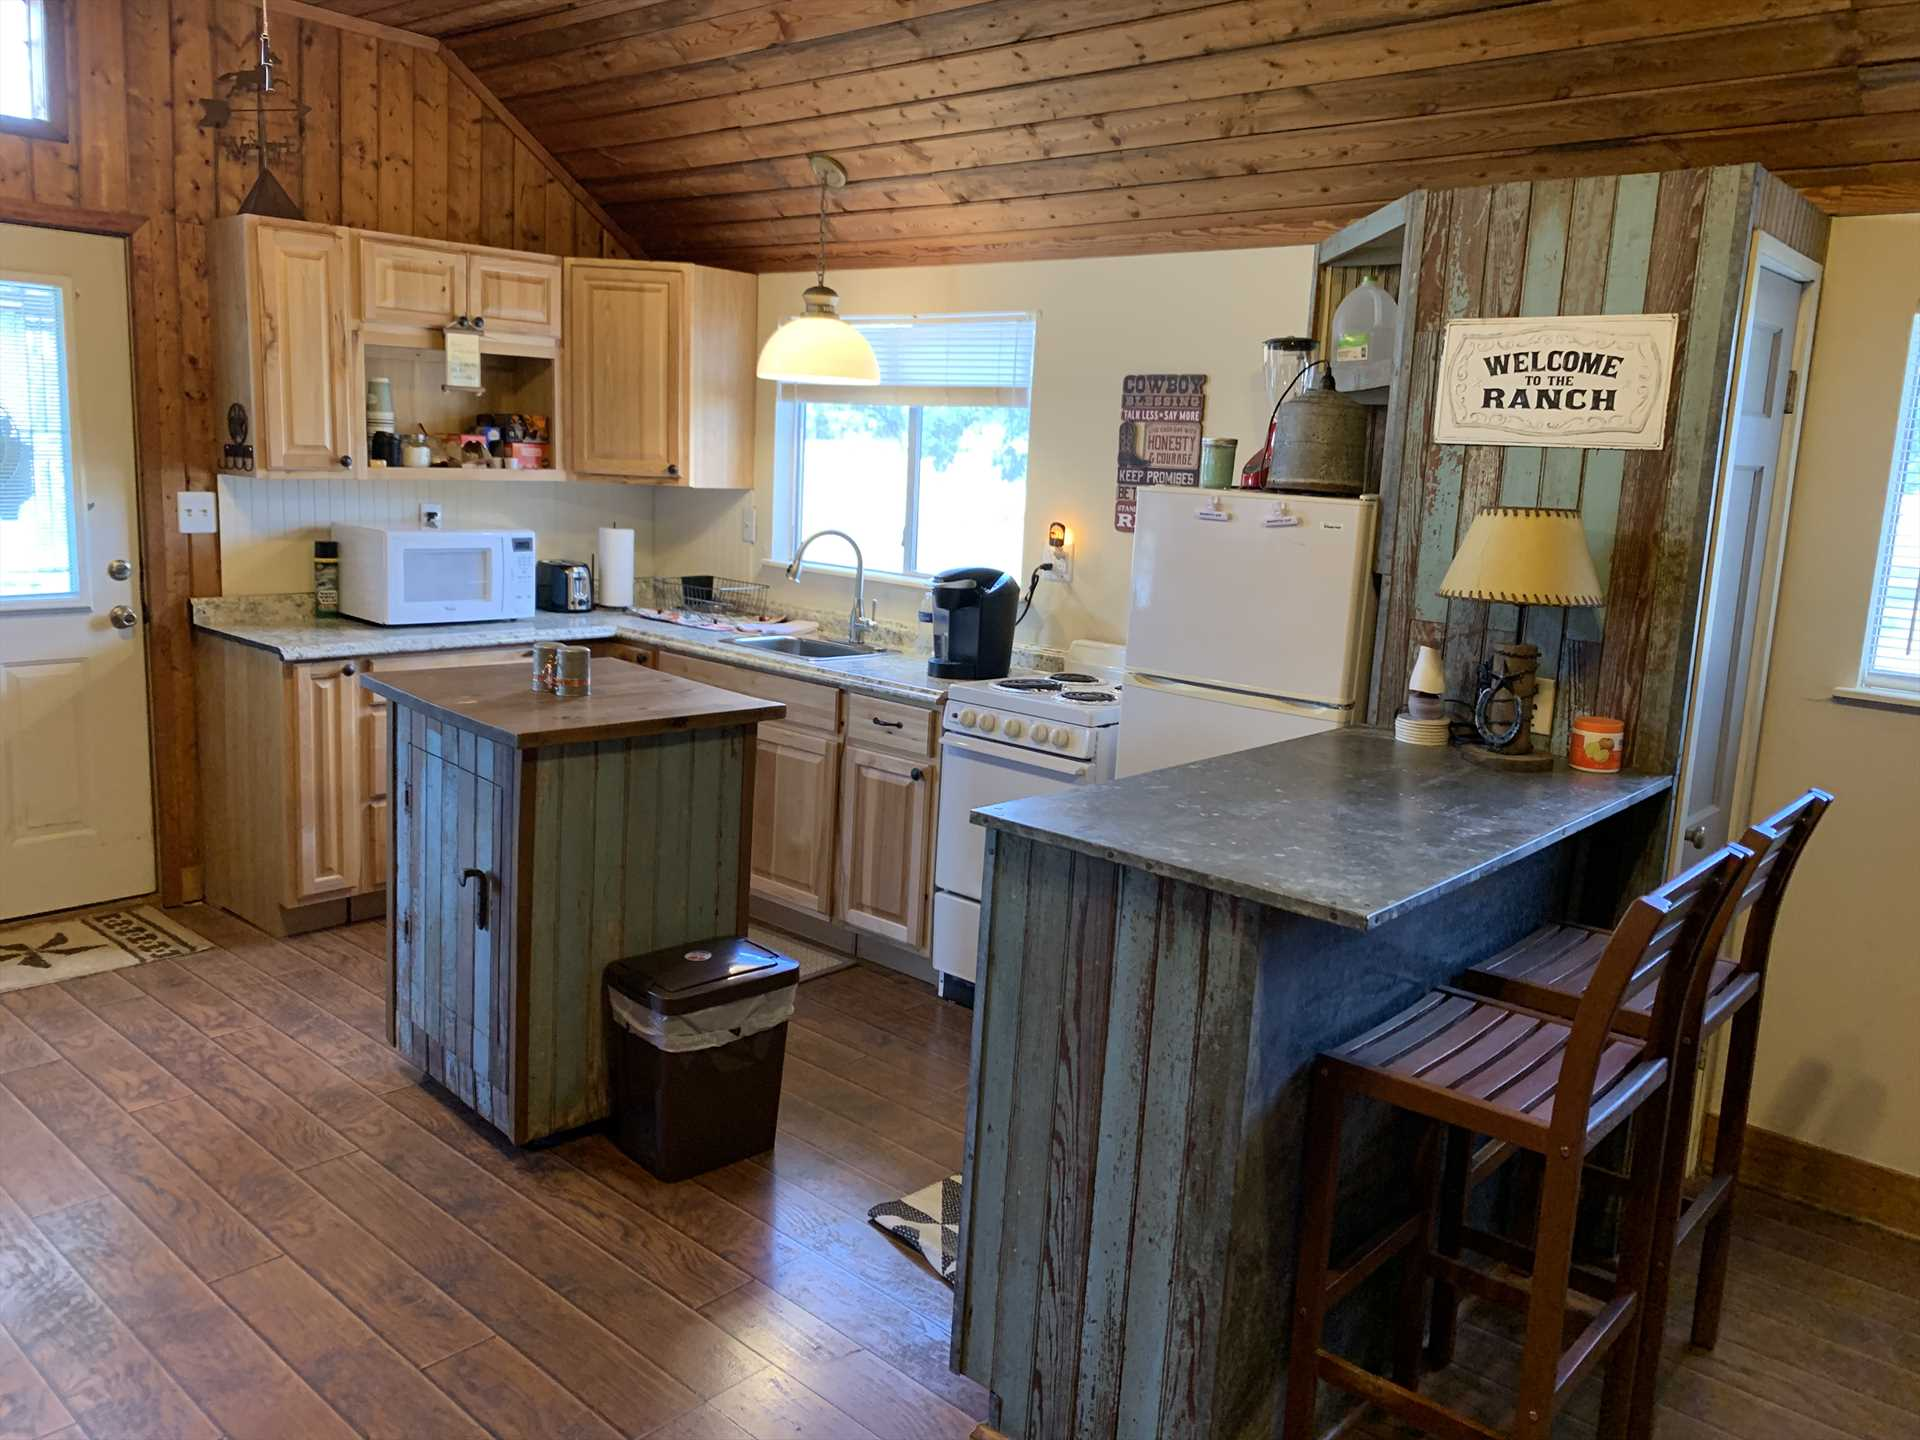 Appliances, utensils, and coffee fixin's are all included in the tidy country kitchen.